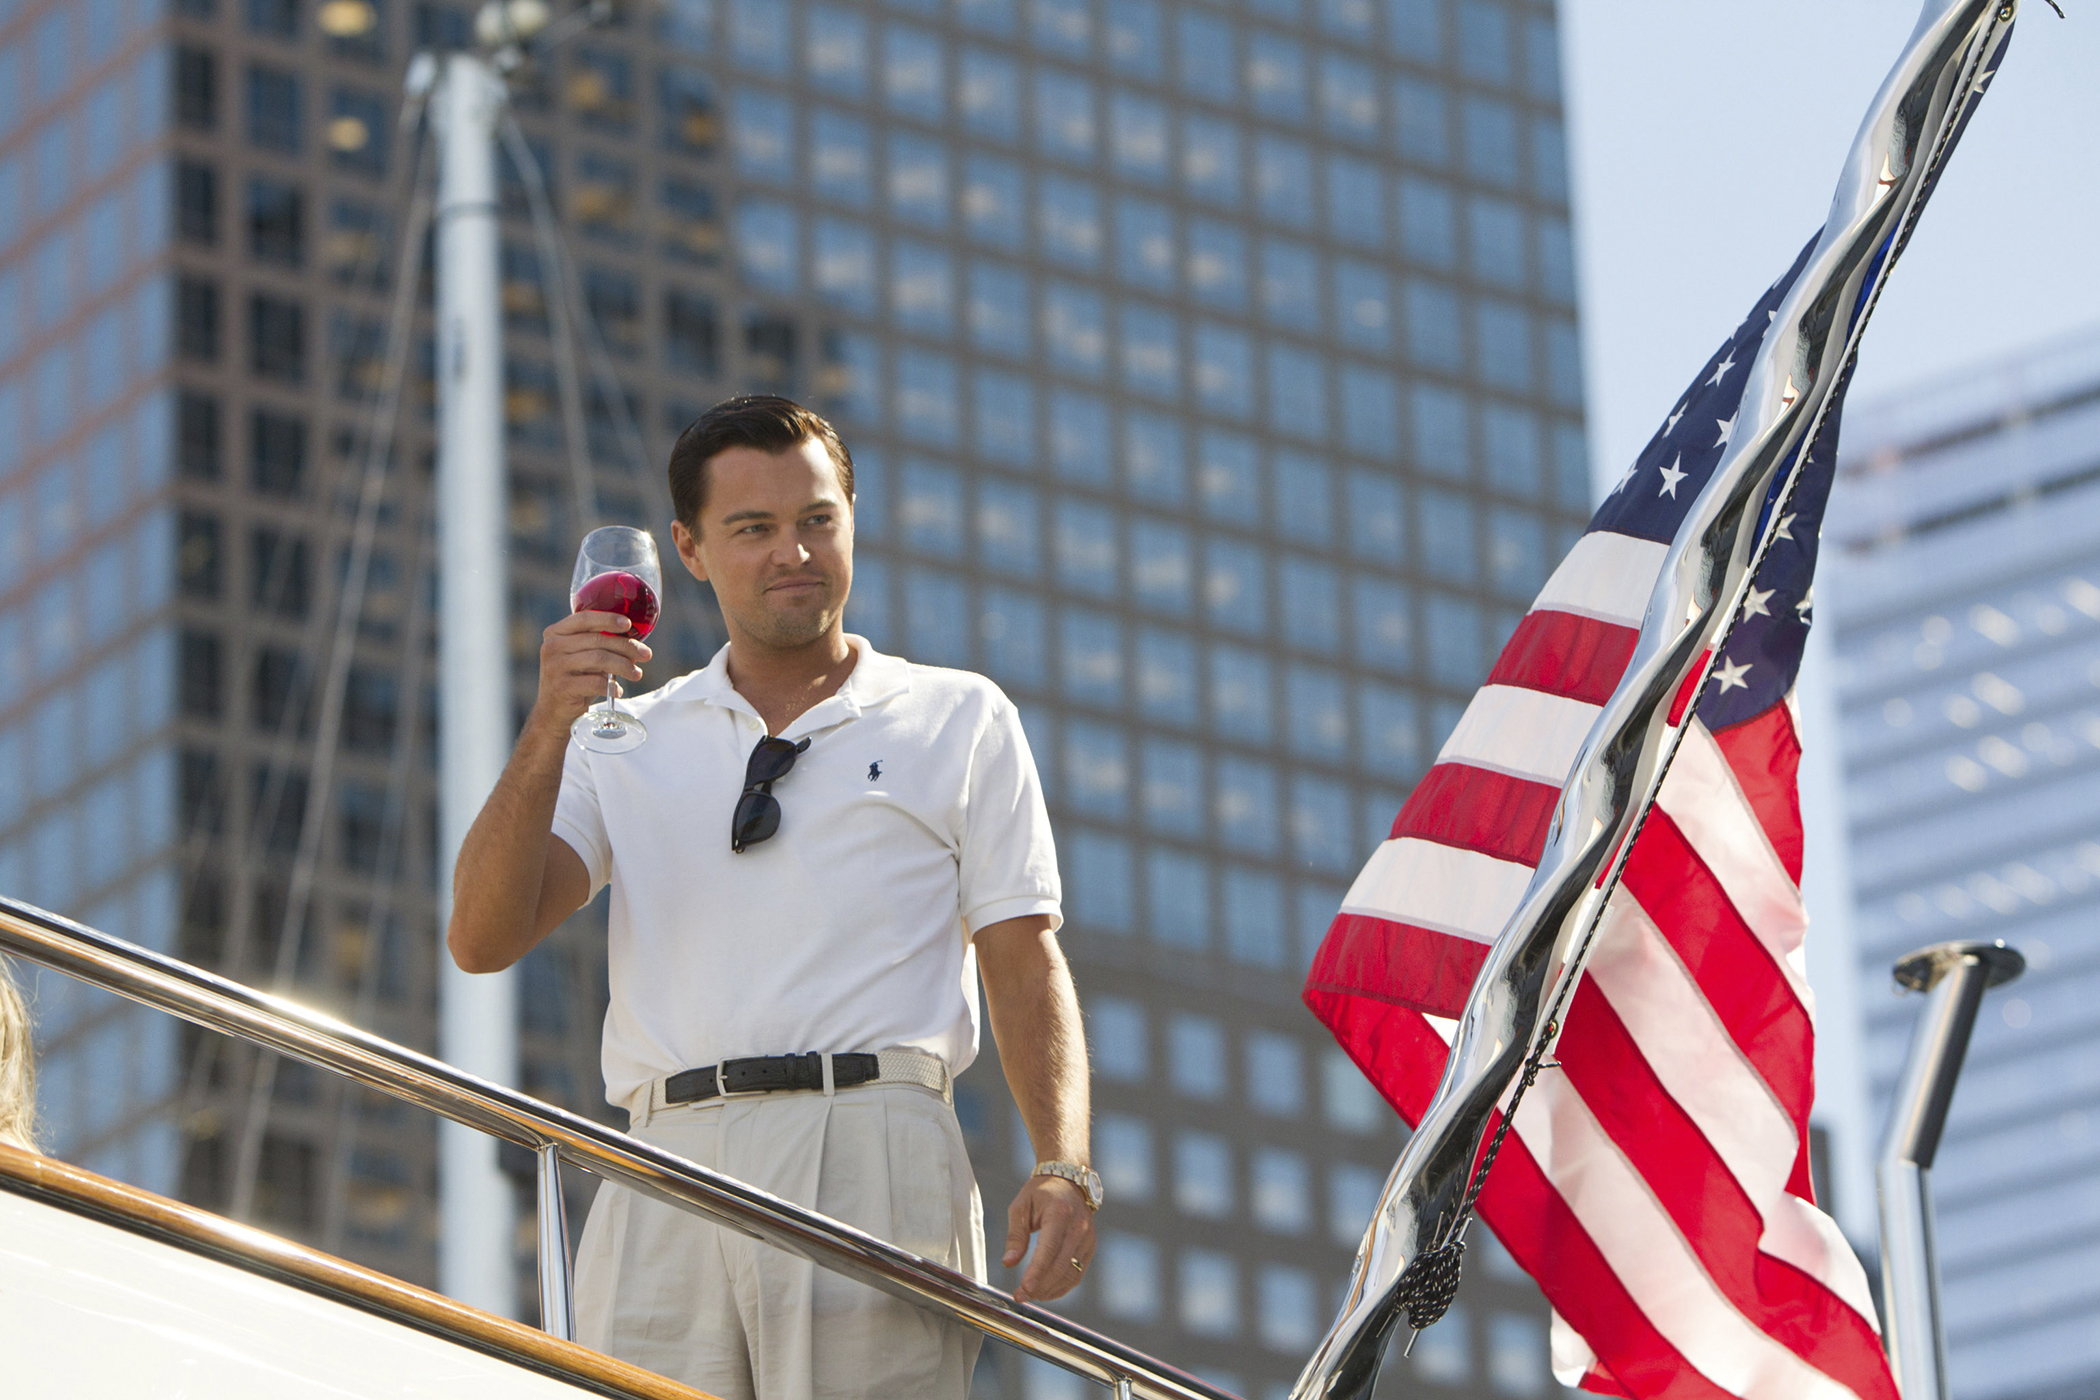 Leonardo DiCaprio in <i>The Wolf of Wall Street</i>